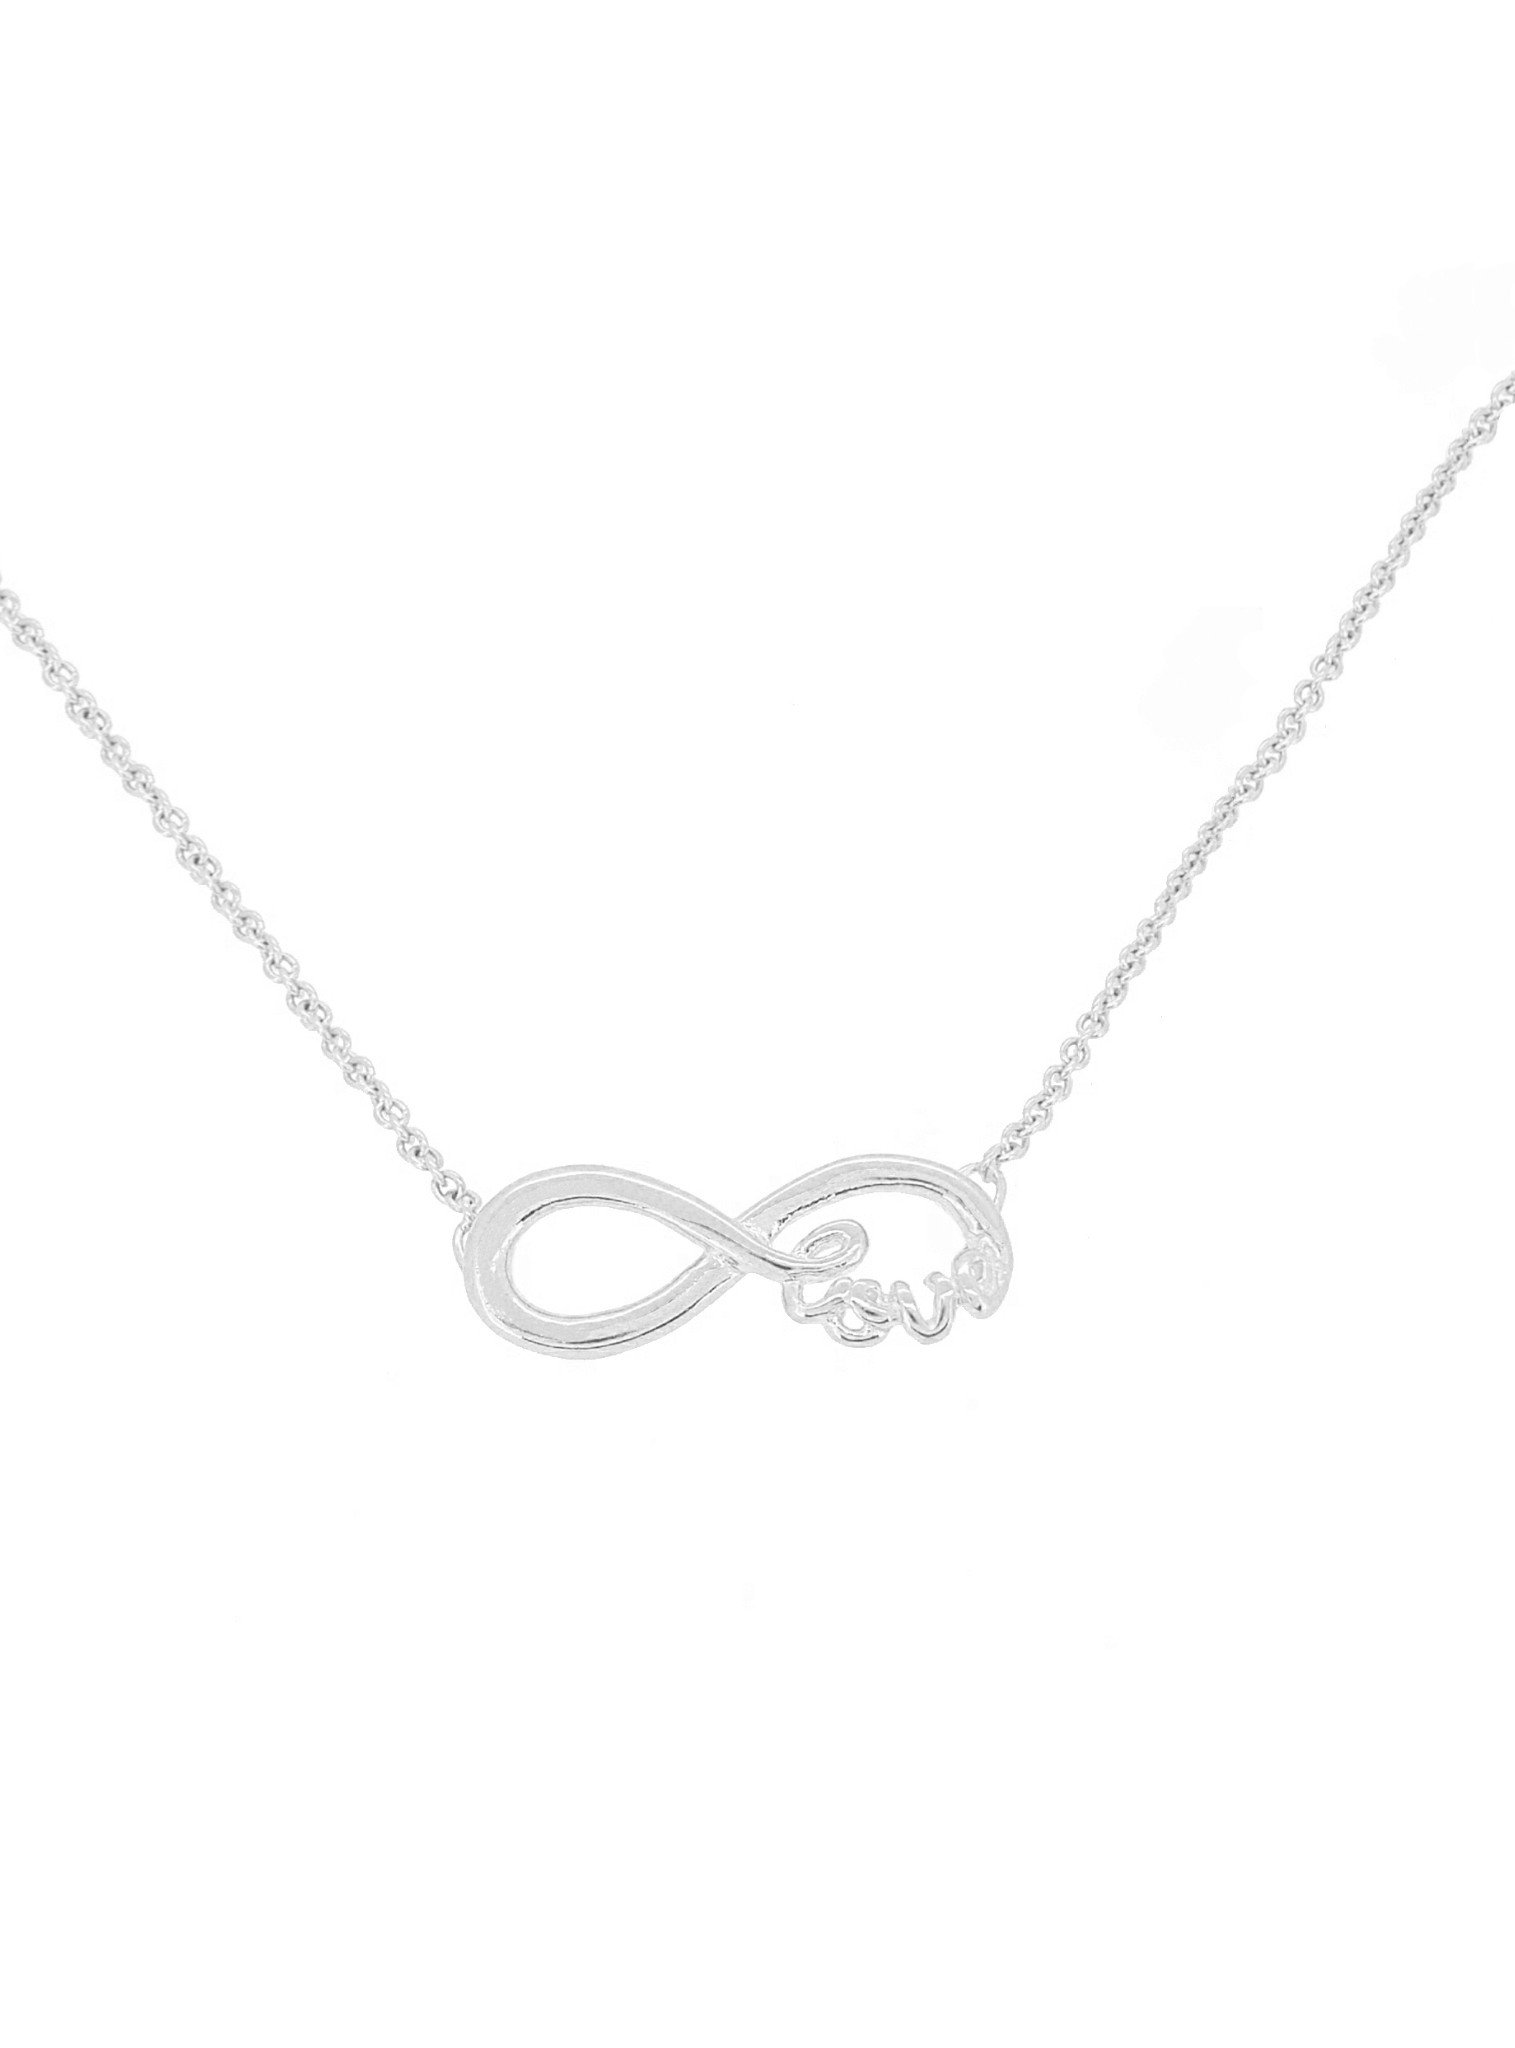 Infinite Love Infinity Charm Necklace in Sterling Silver